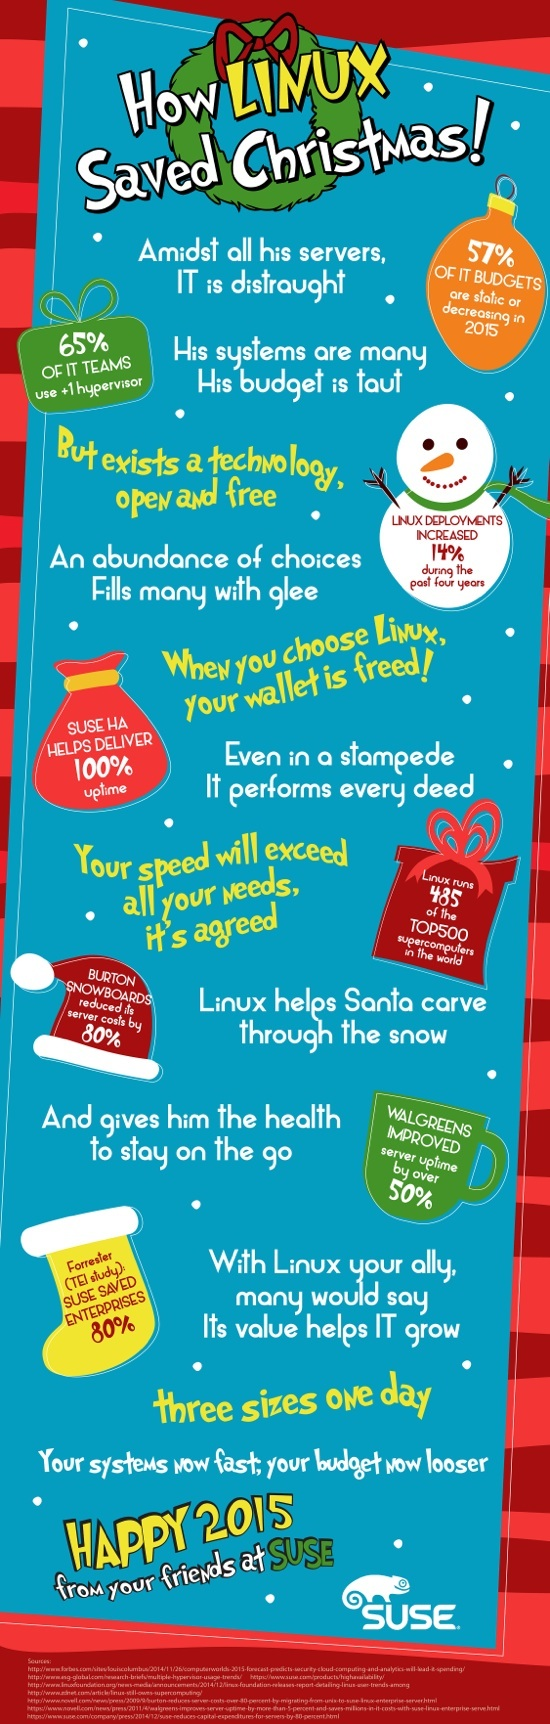 SUSE How Linux Saved Christmas